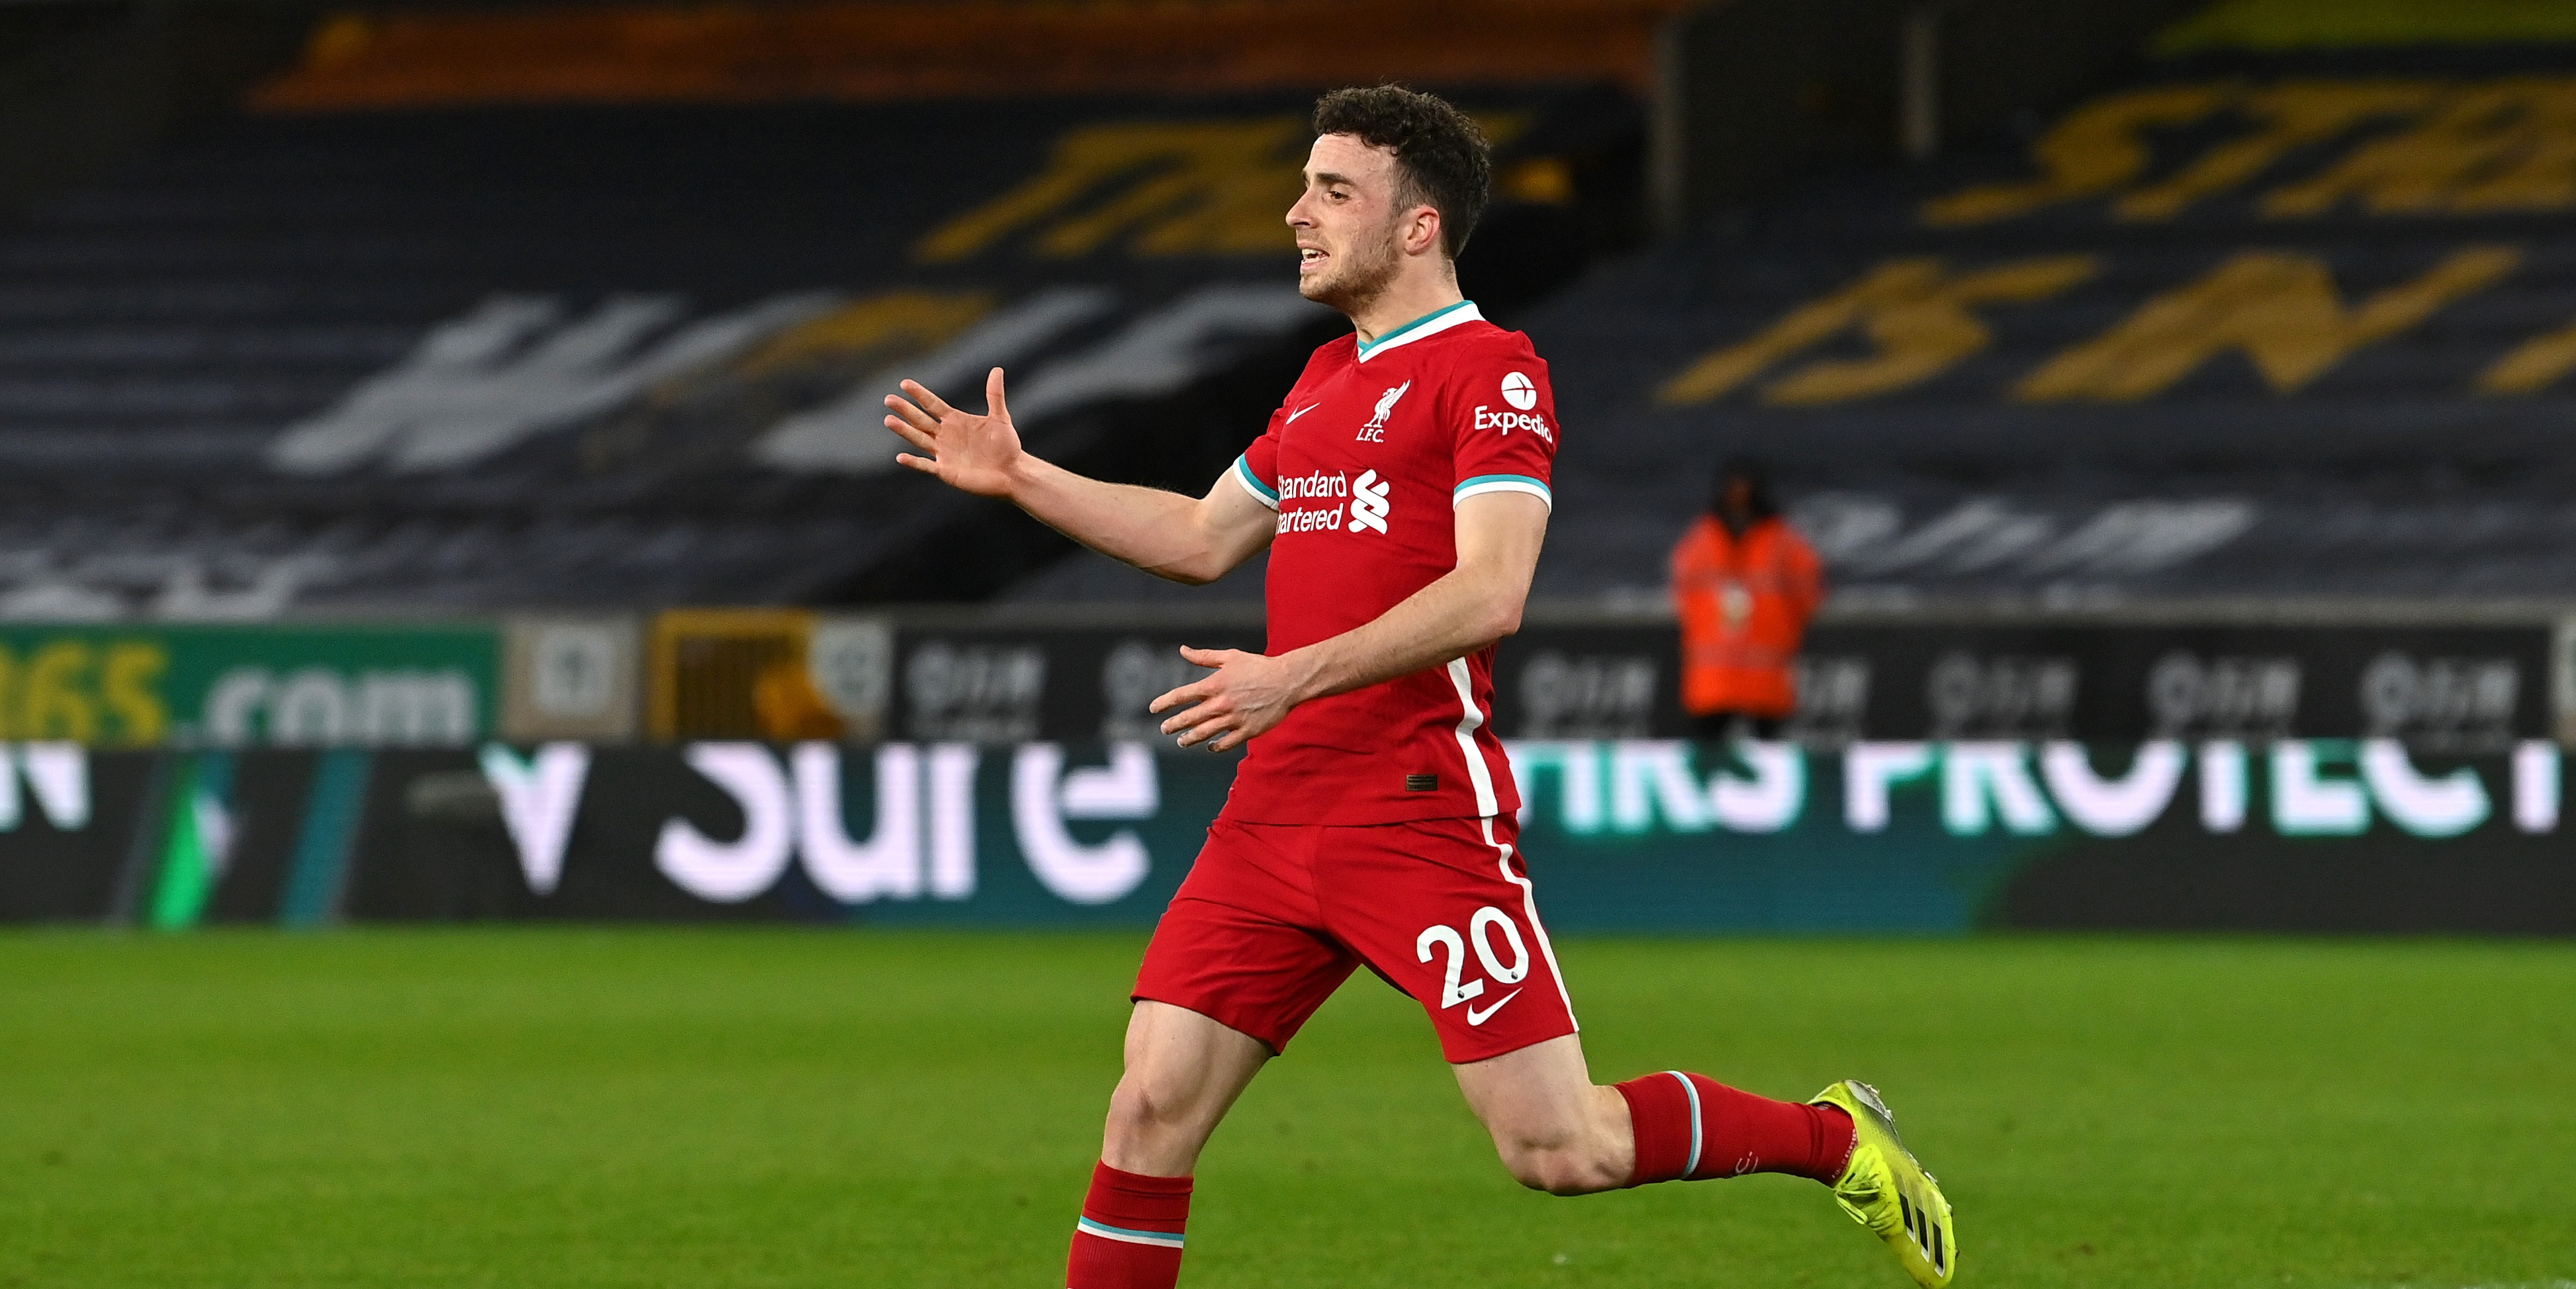 Jota identifies one thing Liverpool must change in the second-half of games to improve results